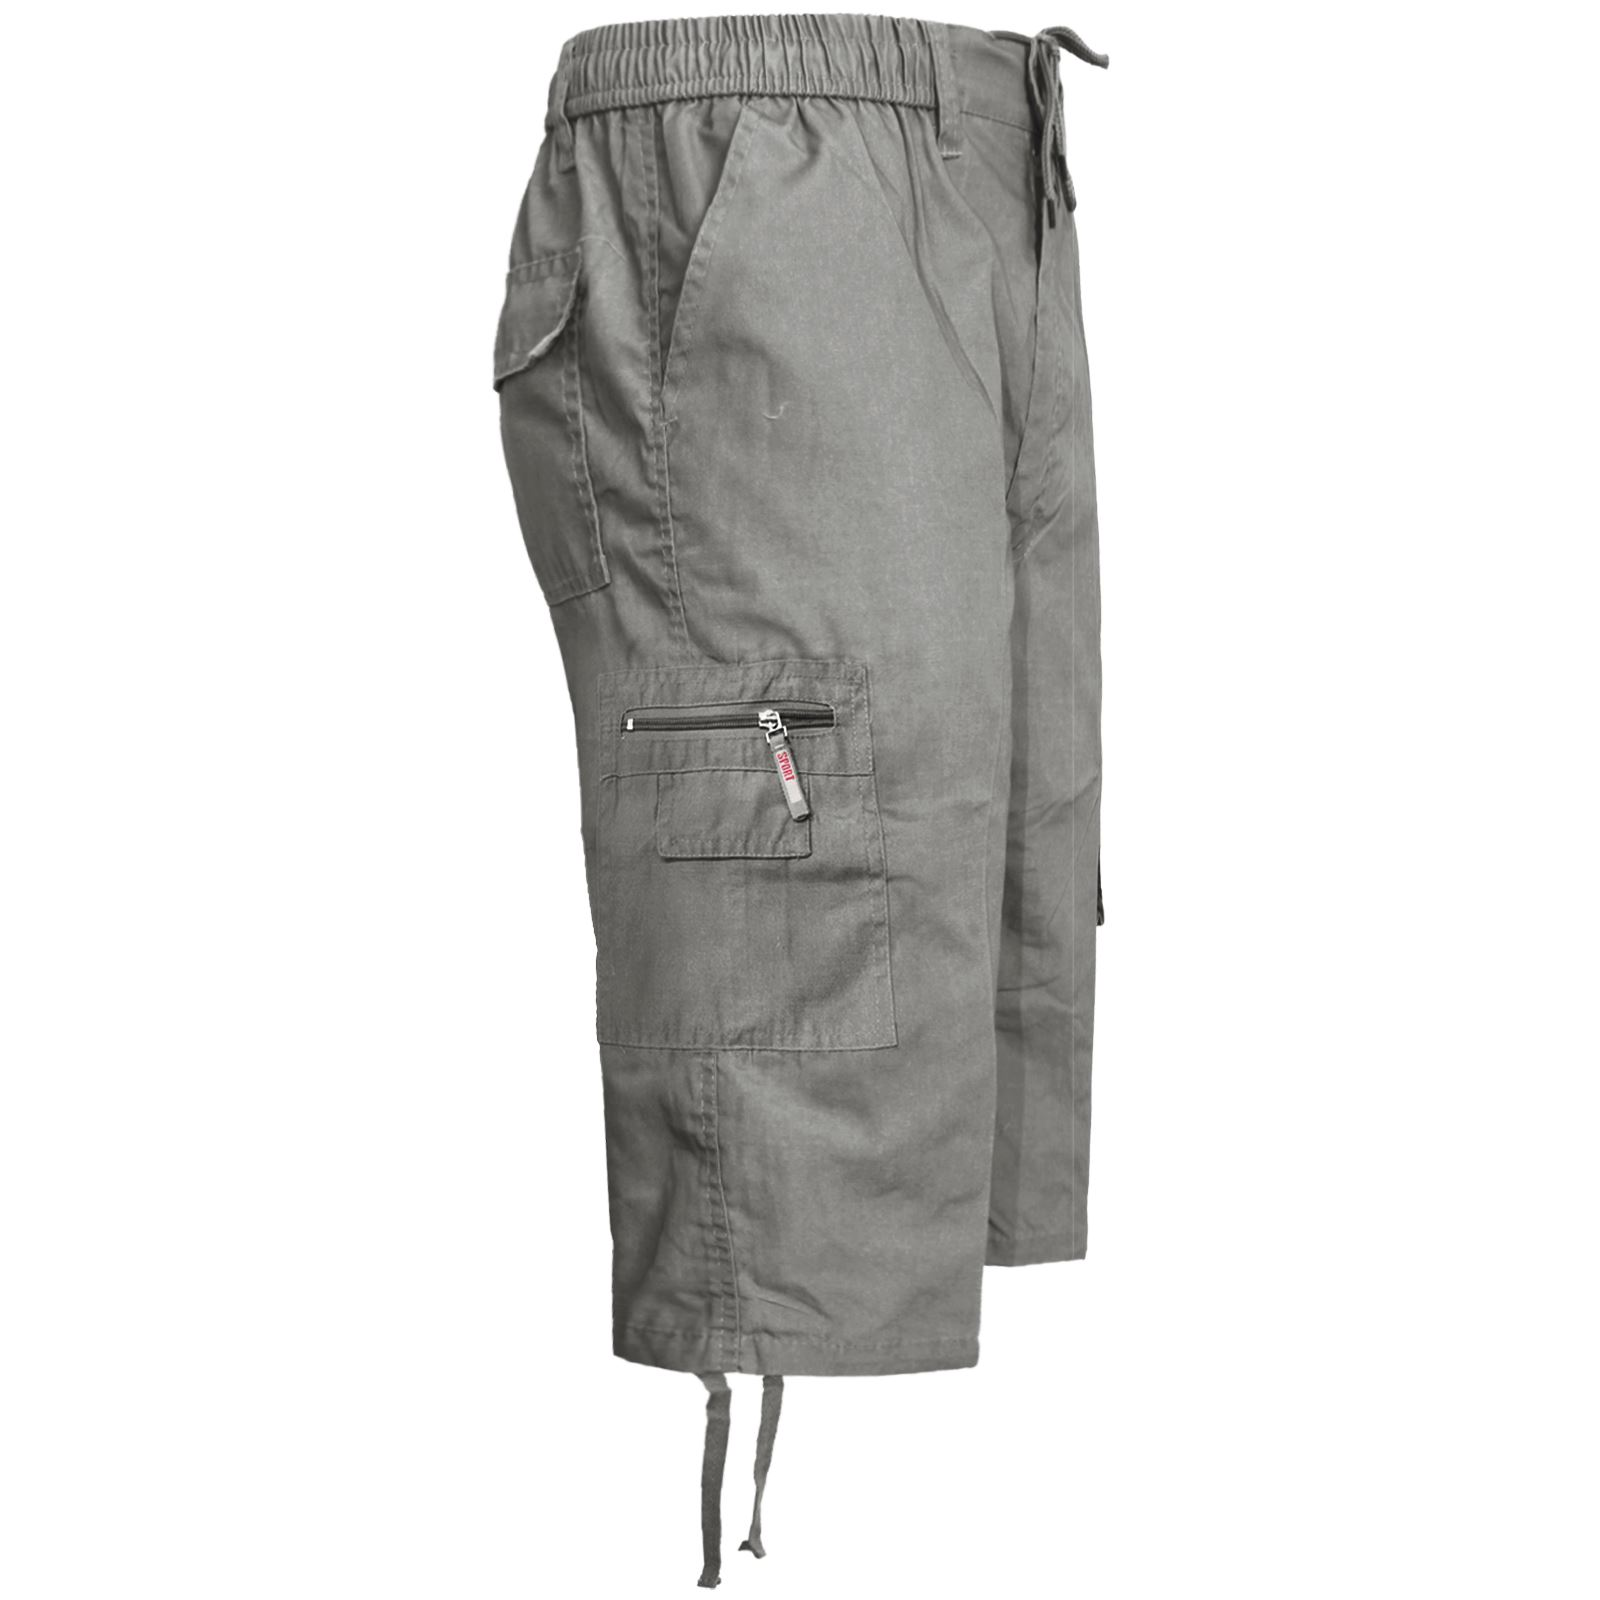 MENS-ELASTICATED-KNEE-LENGTH-OR-3-4-SHORTS-CARGO-COMBAT-MULTI-POCKET-SUMMER-PANT thumbnail 31